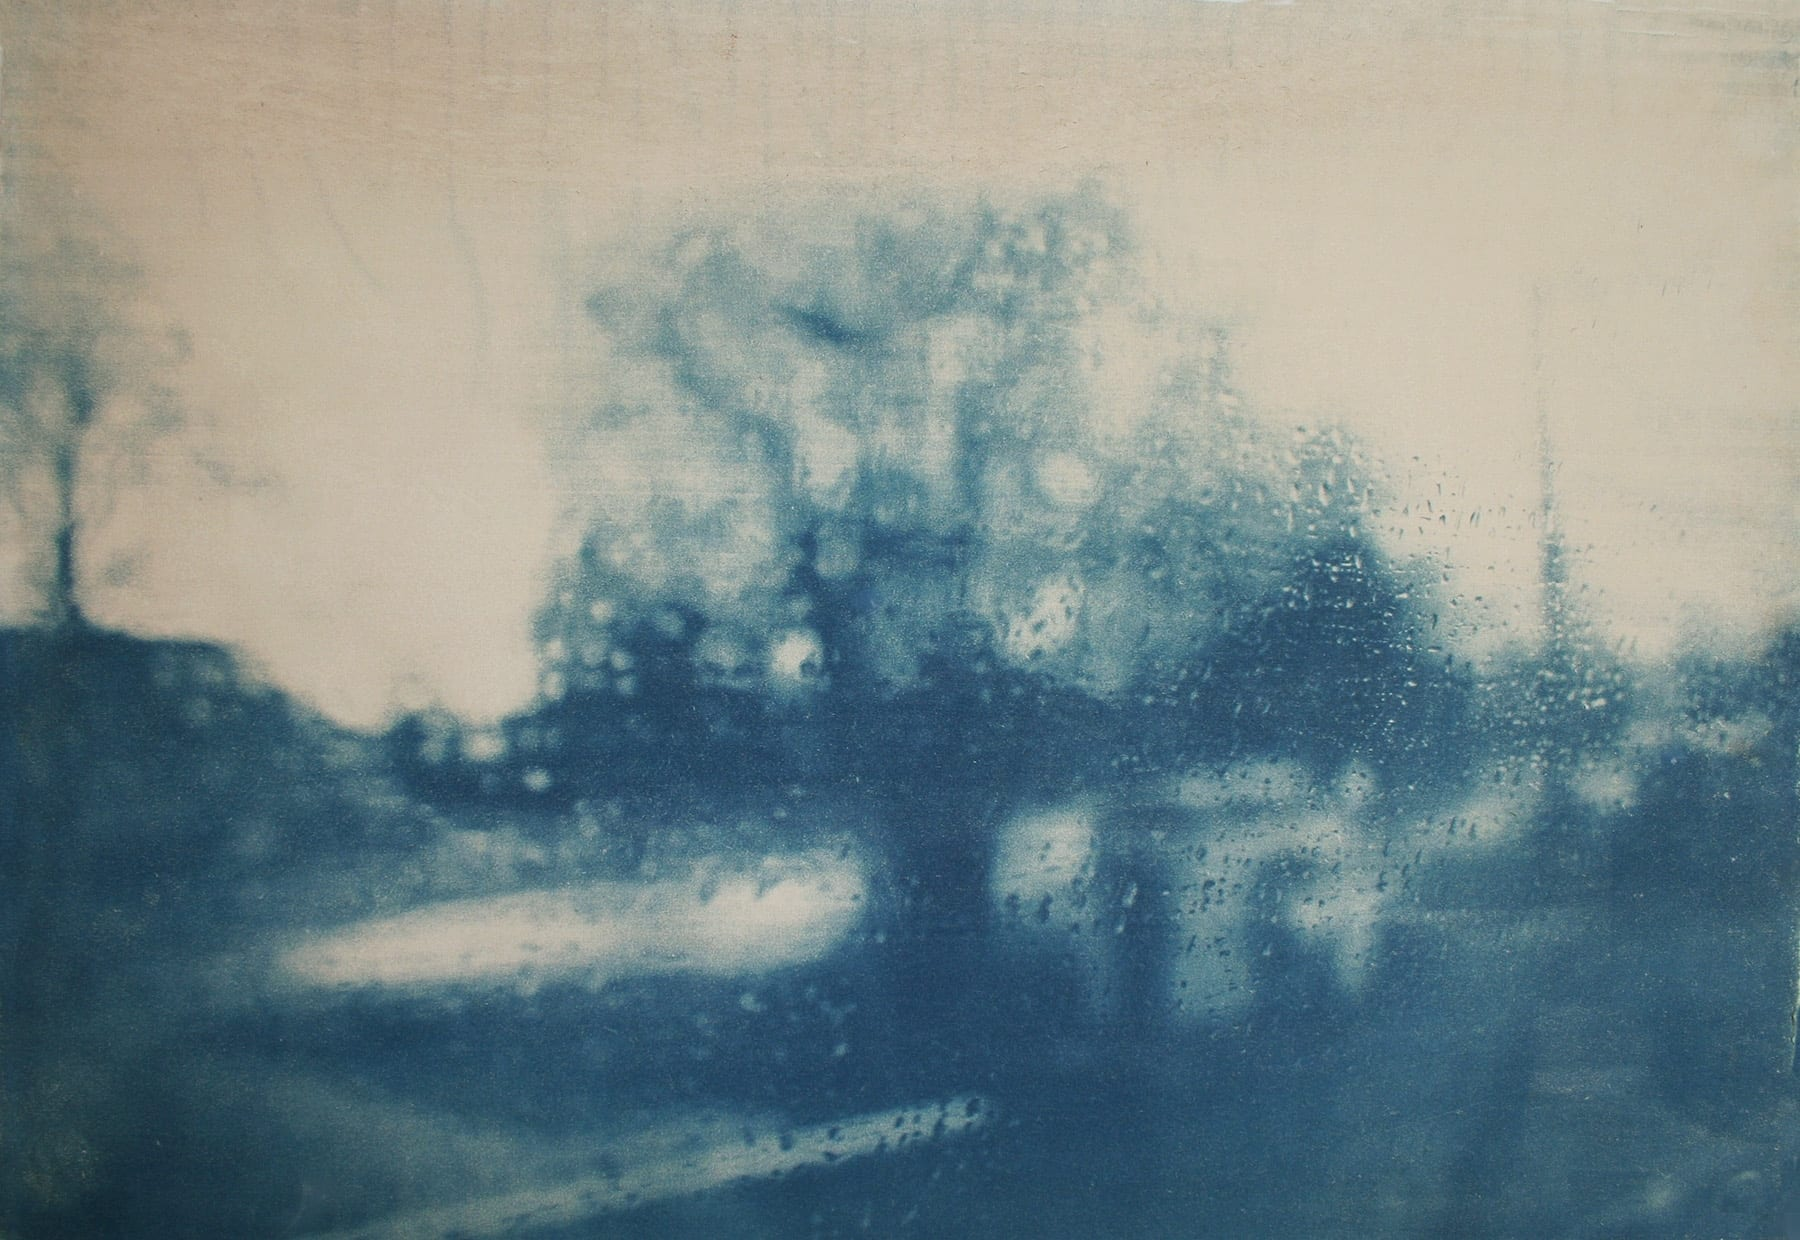 Journey-14-Katja Liebmann-HackelBury Fine Art-cyanotype photograph of blurry tree and landscape through rainy window